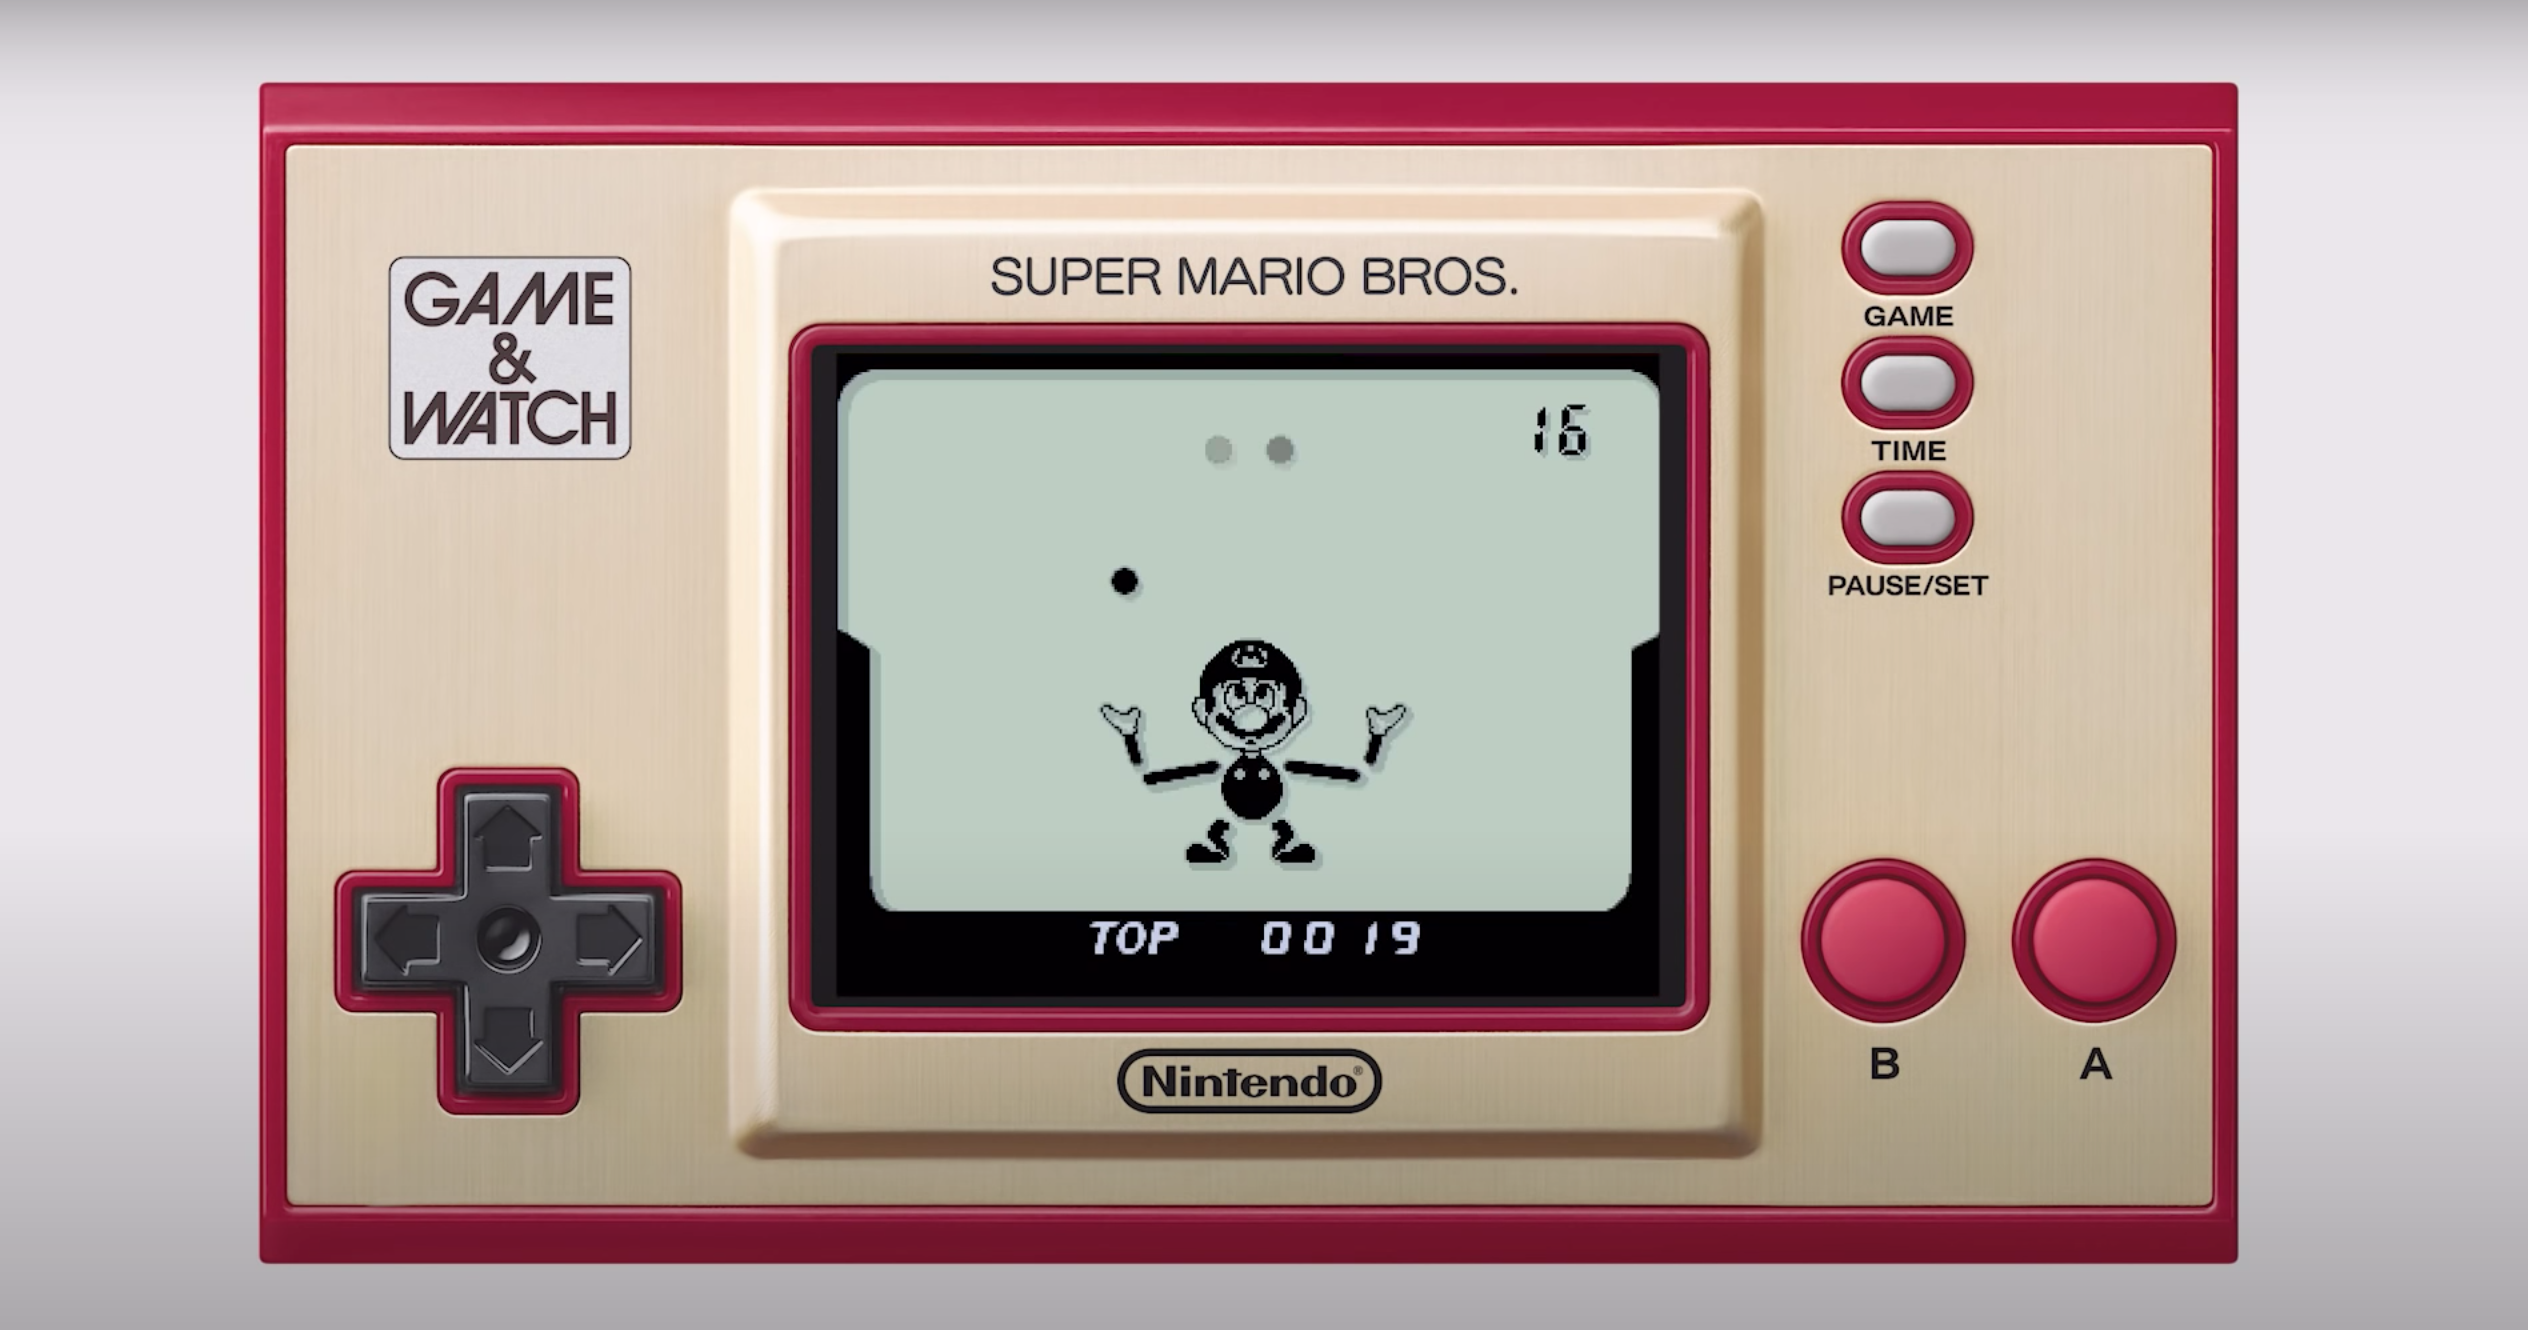 Game & Watch: Super Mario Bros. will make a great addition to your Nintendo collection.